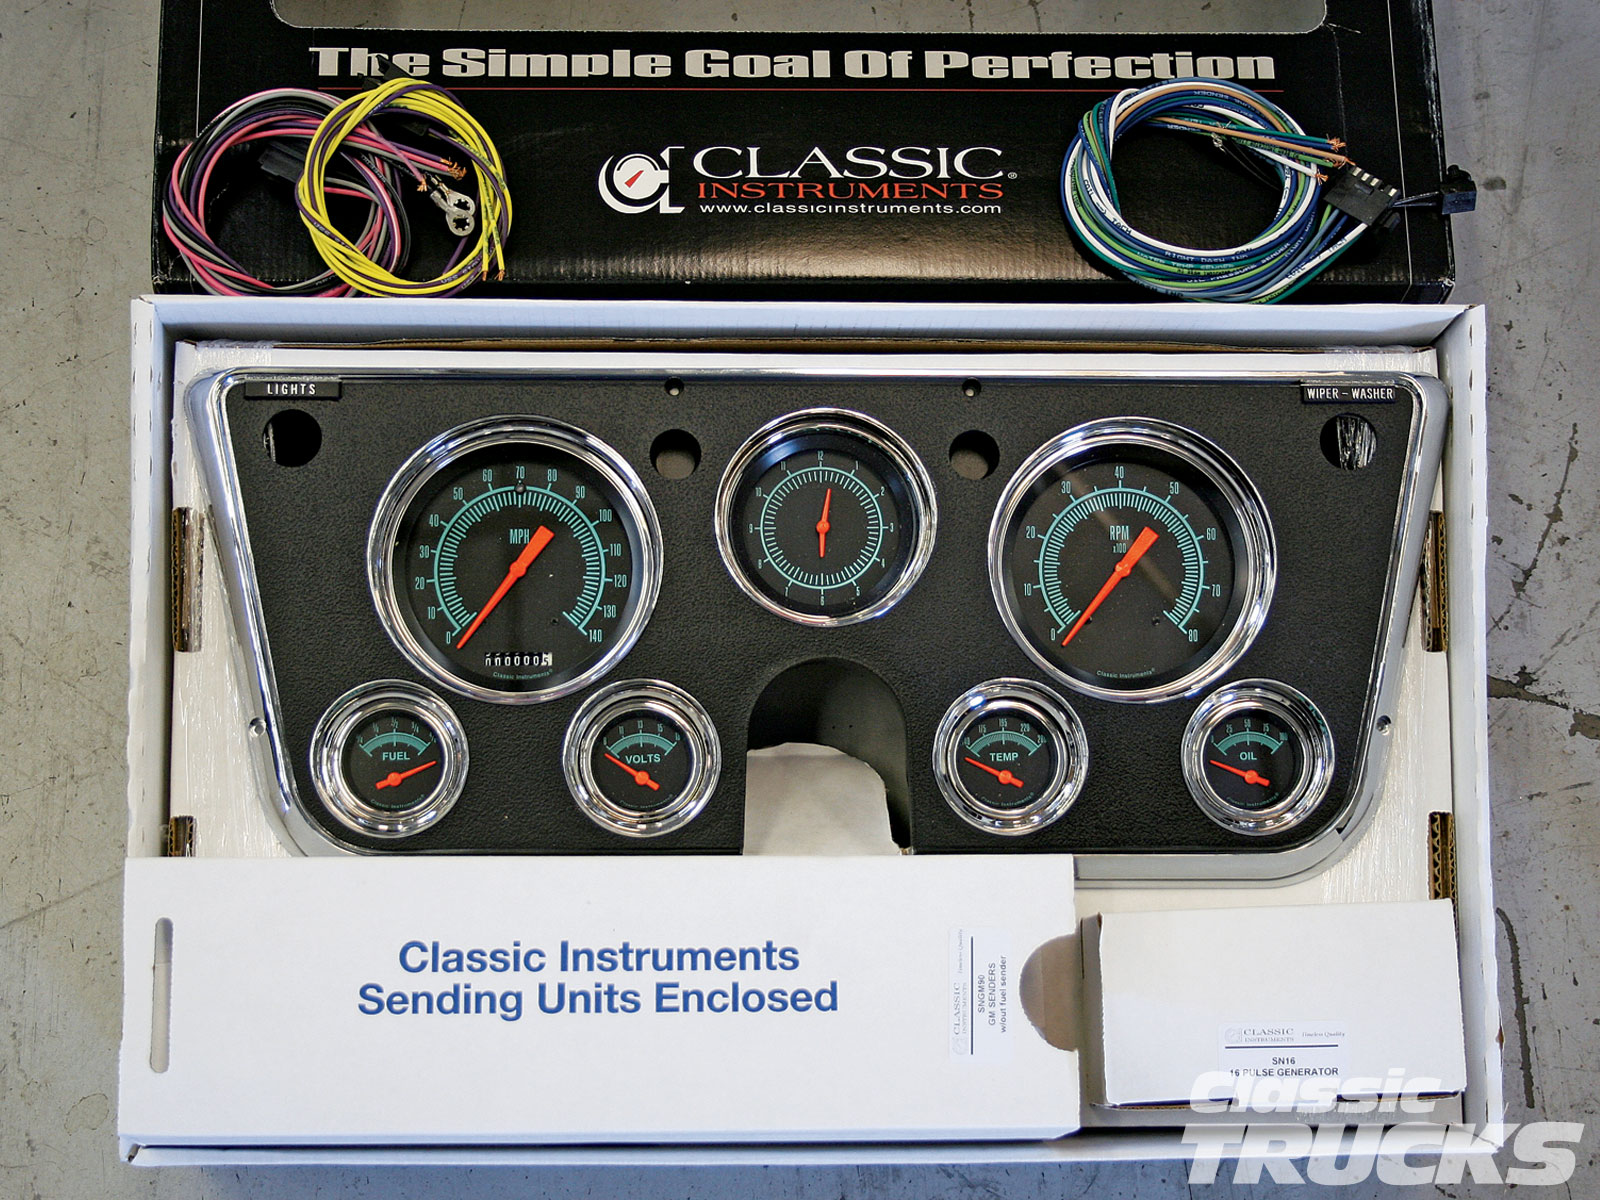 1972 chevrolet truck wiring diagram dodge ram 2500 parts classic instruments gauge panels for 1967-1972 chevys and gmcs - hot rod network